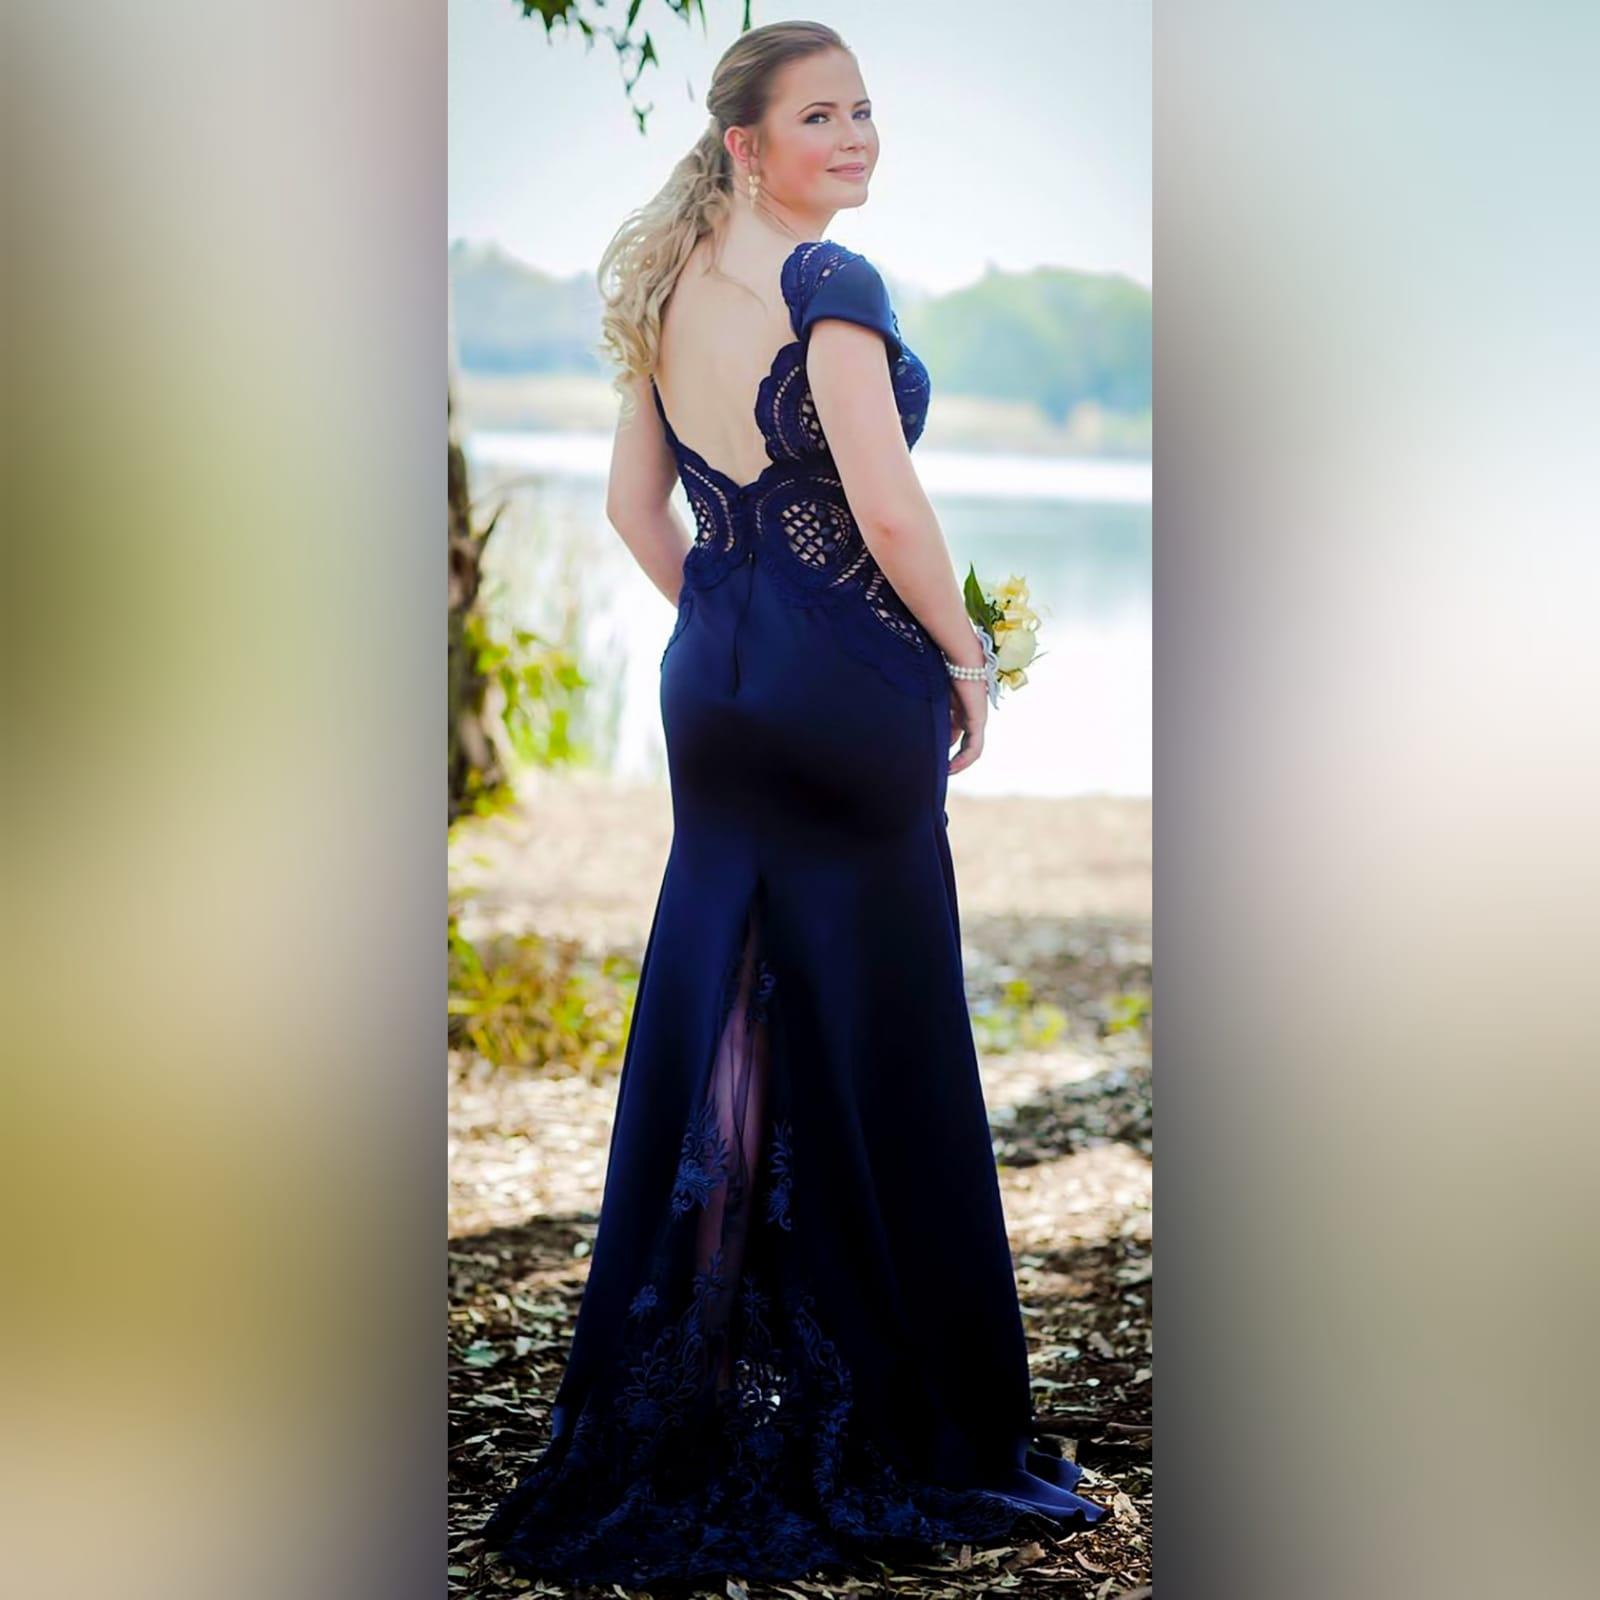 Navy blue long flowy dress with lace bodice 5 navy blue long flowy dress with lace bodice, v neckline & low v open back with a slit.